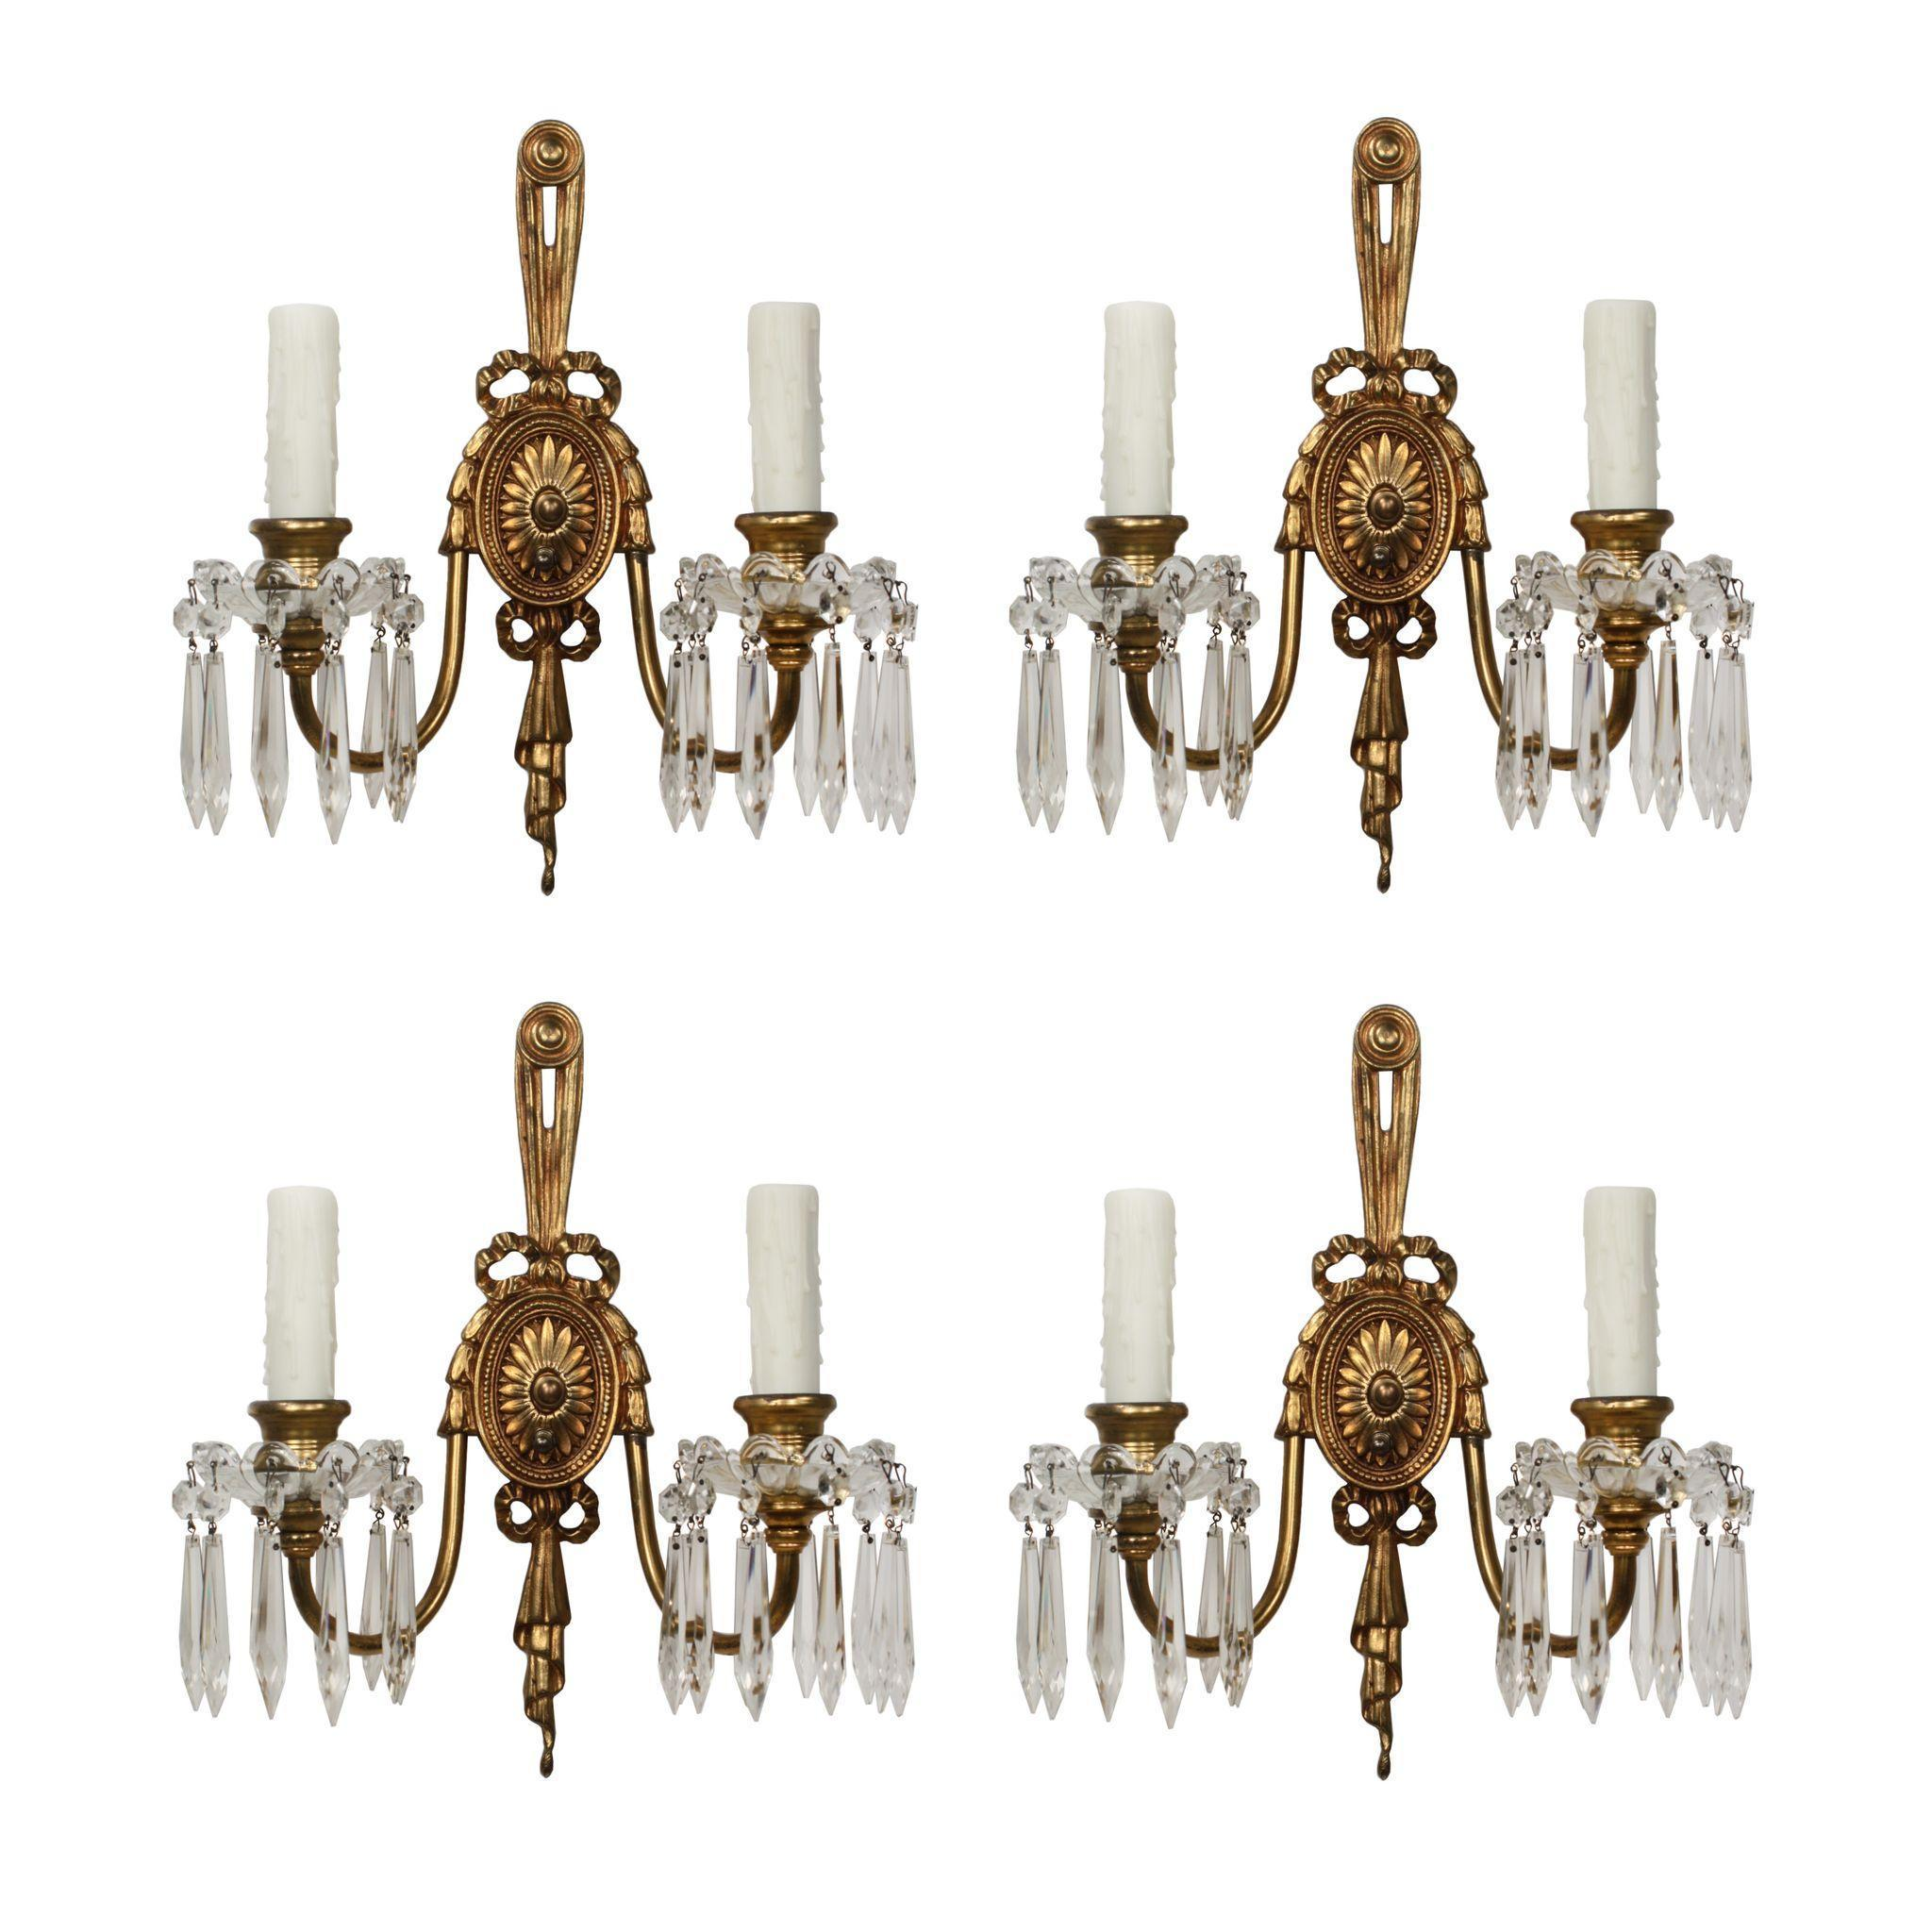 Pairs of Antique Georgian Sconces, Early 1900s